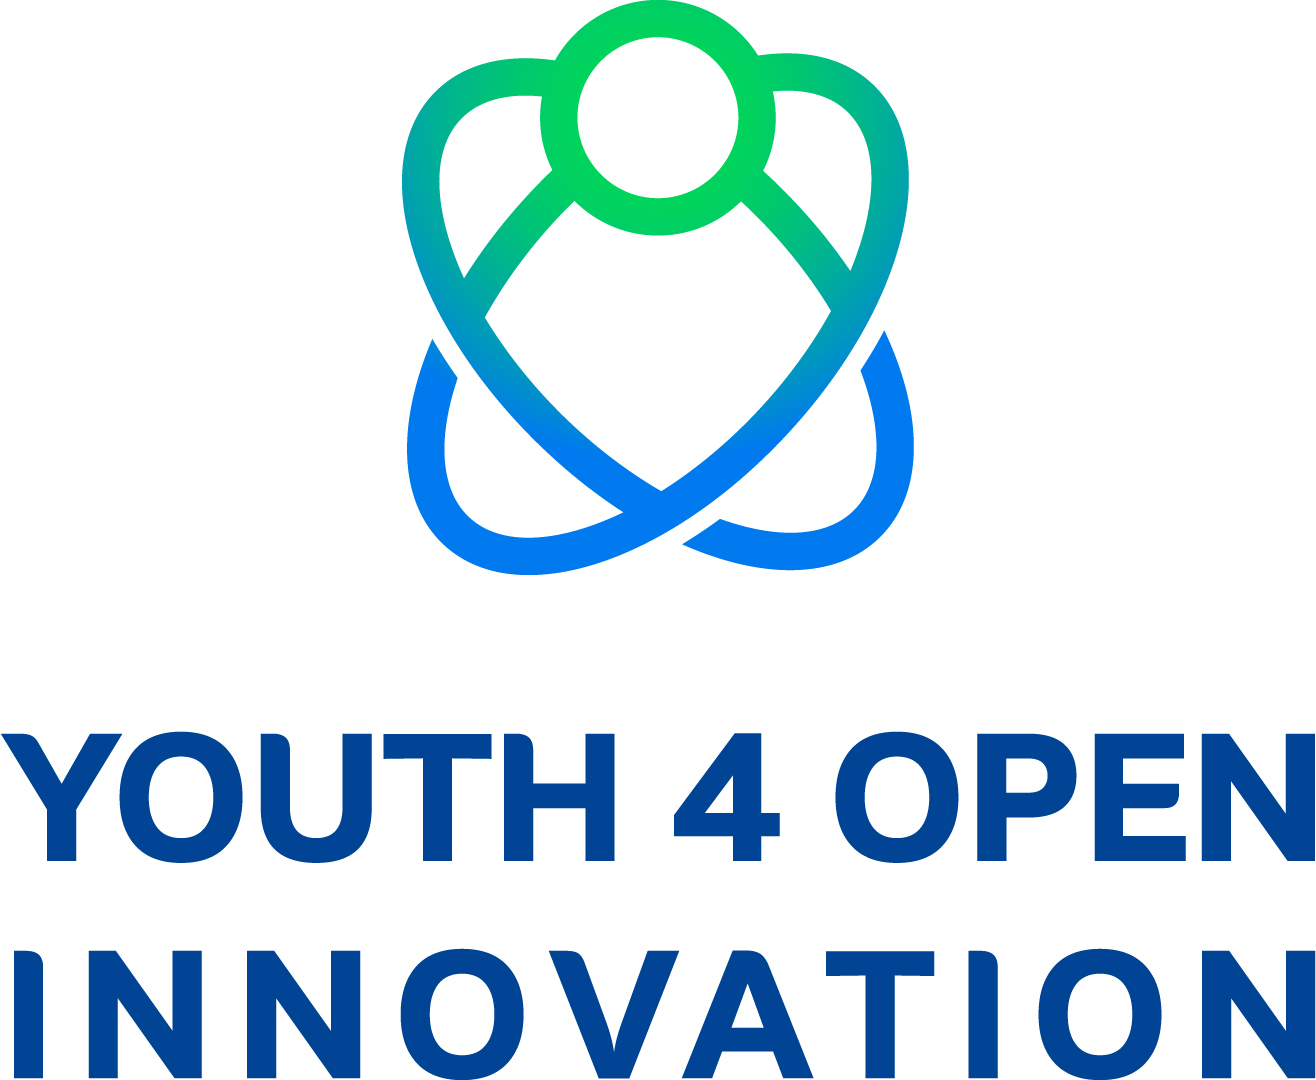 Youth 4 Open Innovation